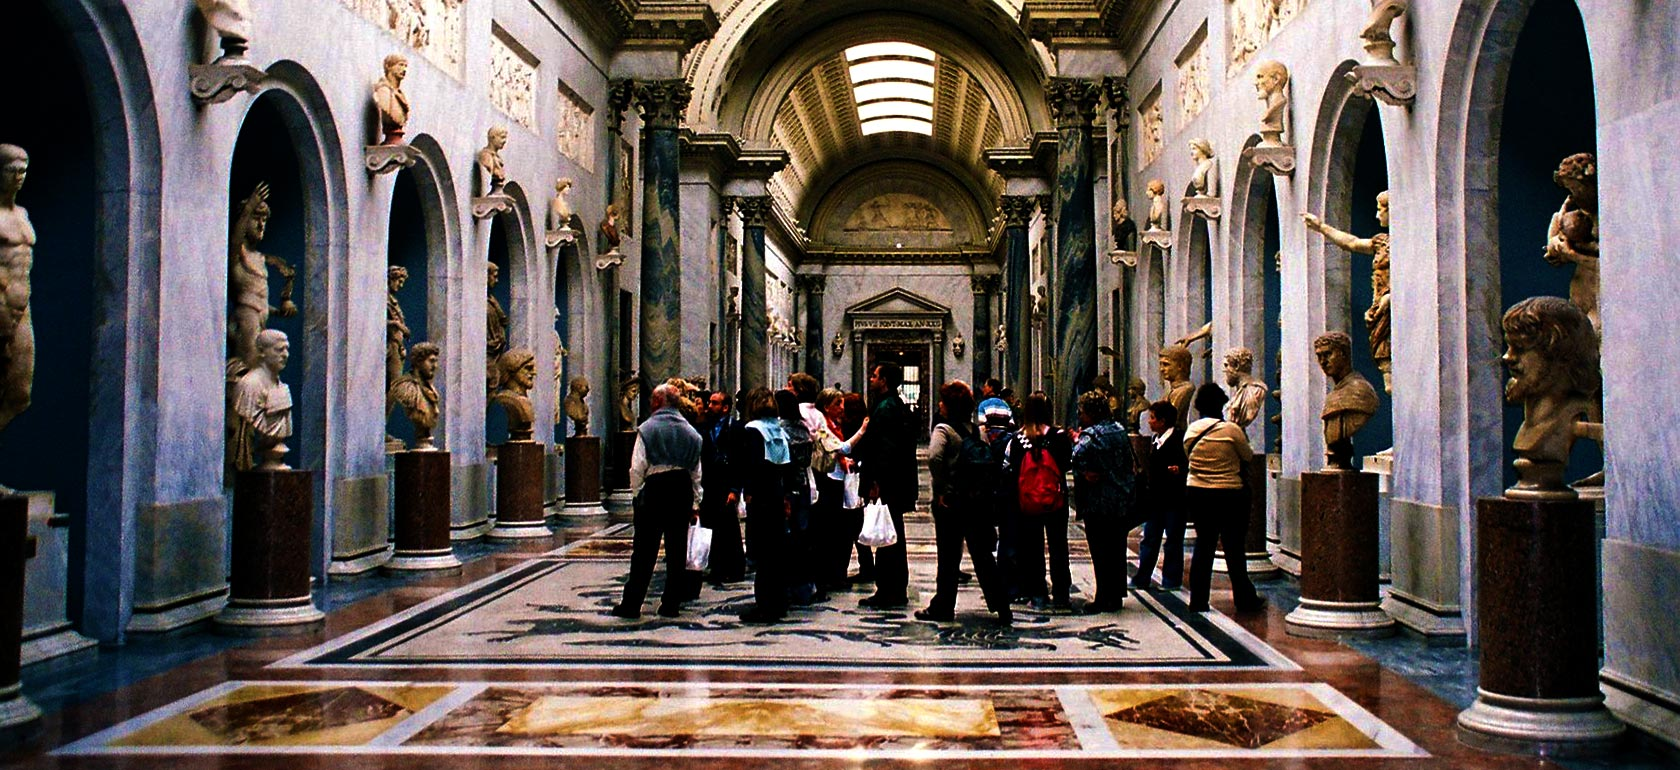 Vatican museum, Sistine Chapel and St Peters' Basílica (Code  3C PM)